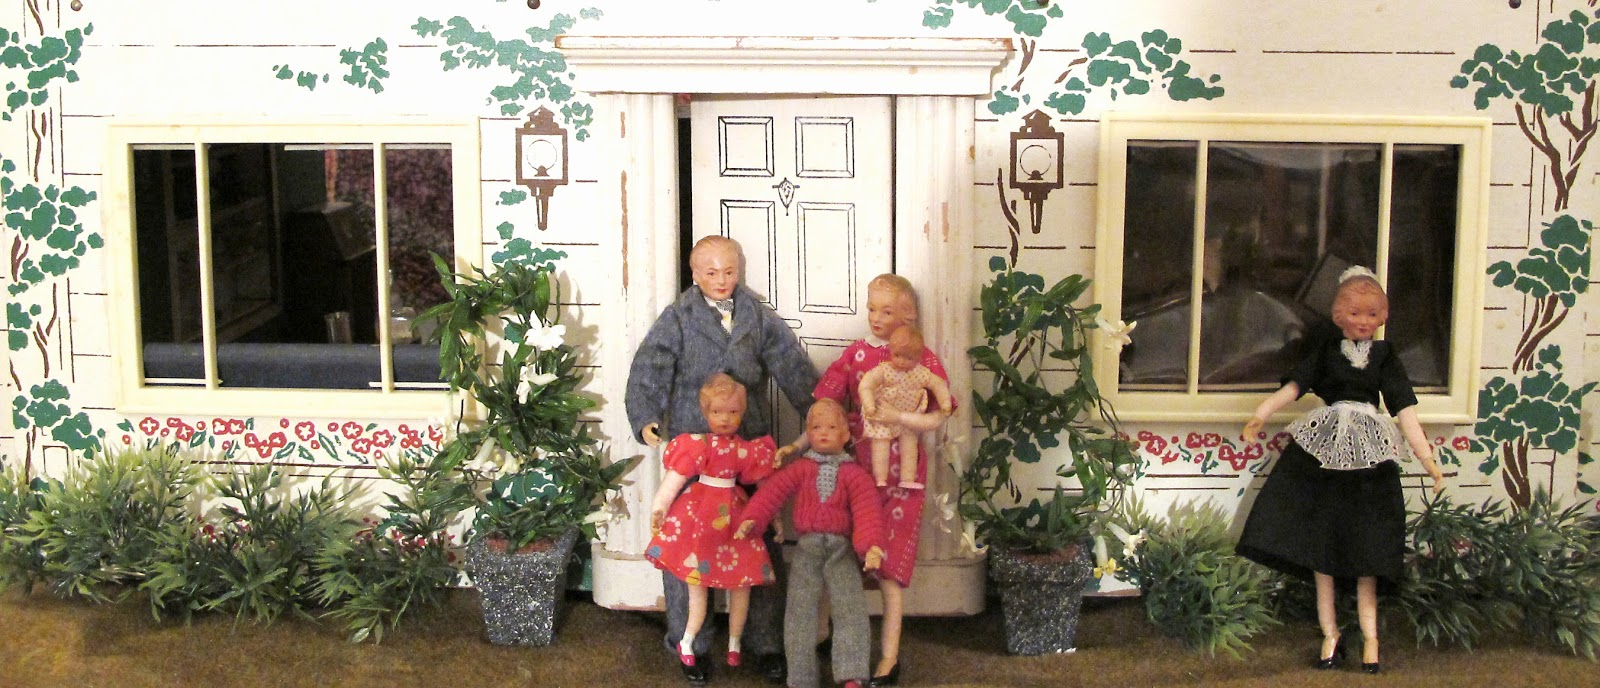 The family poses outside the front door